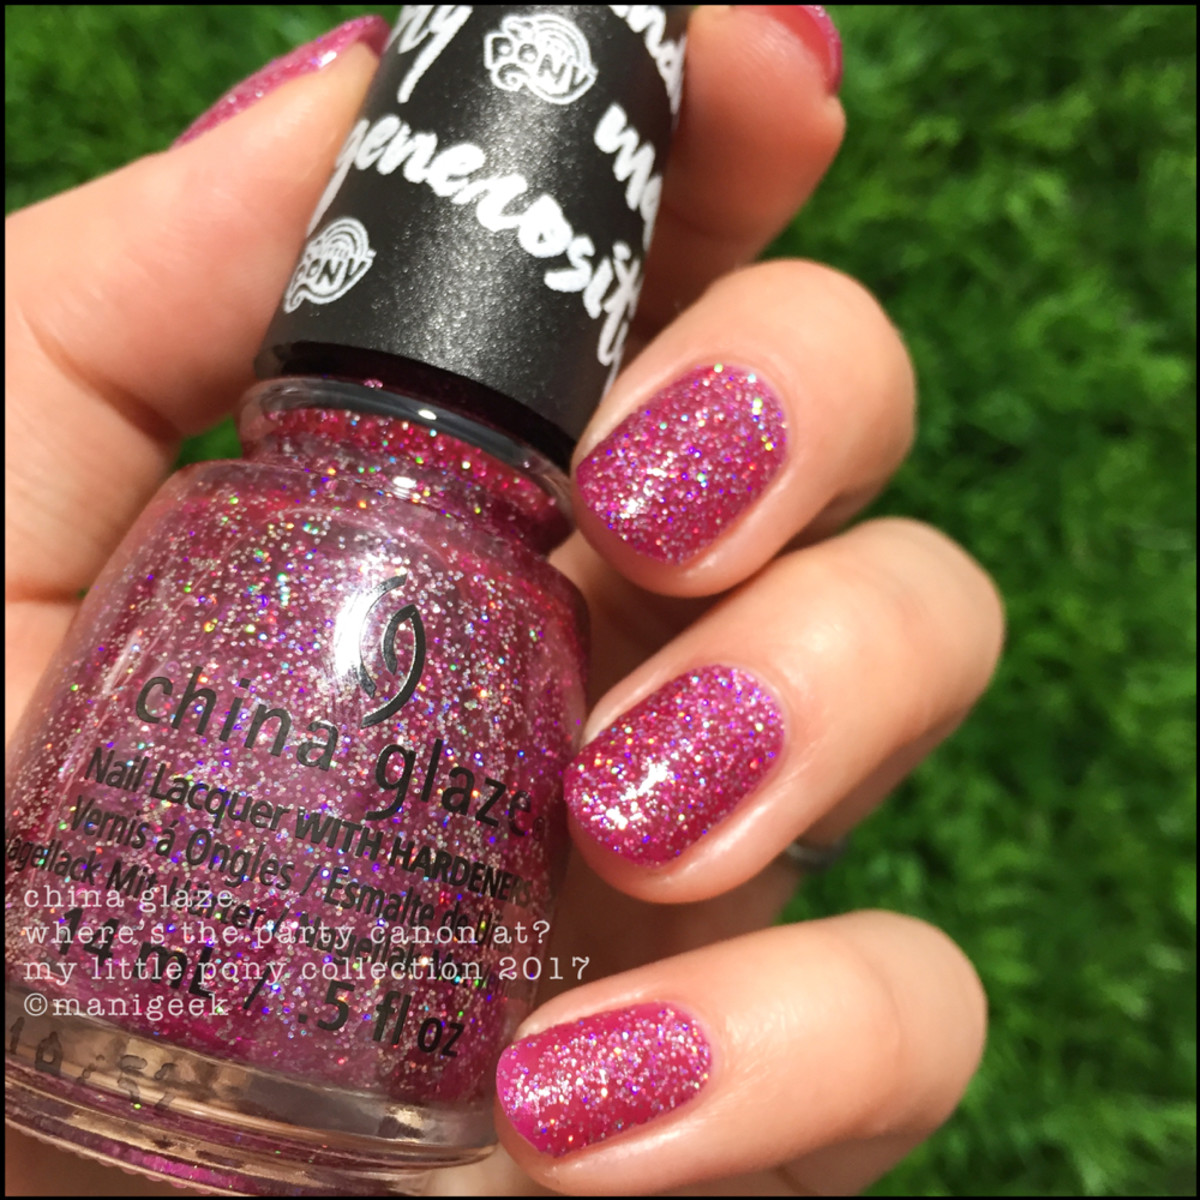 China Glaze Where's The Party Canon At? - China Glaze My Little Pony Swatches Review 2017